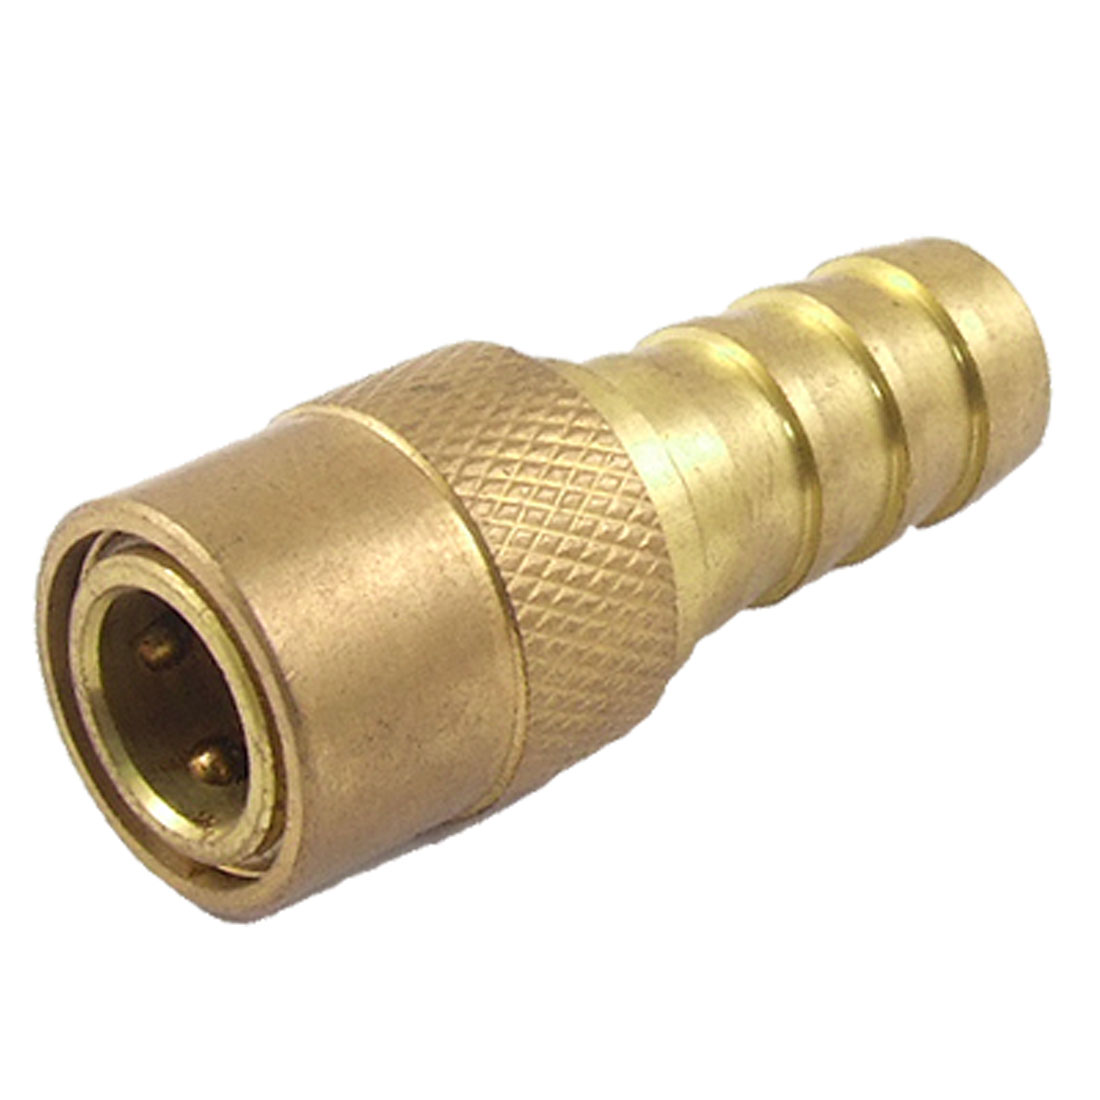 "1.81"" Length Male Quick Fitting Mould Brass Pipe Nipple Fitting"